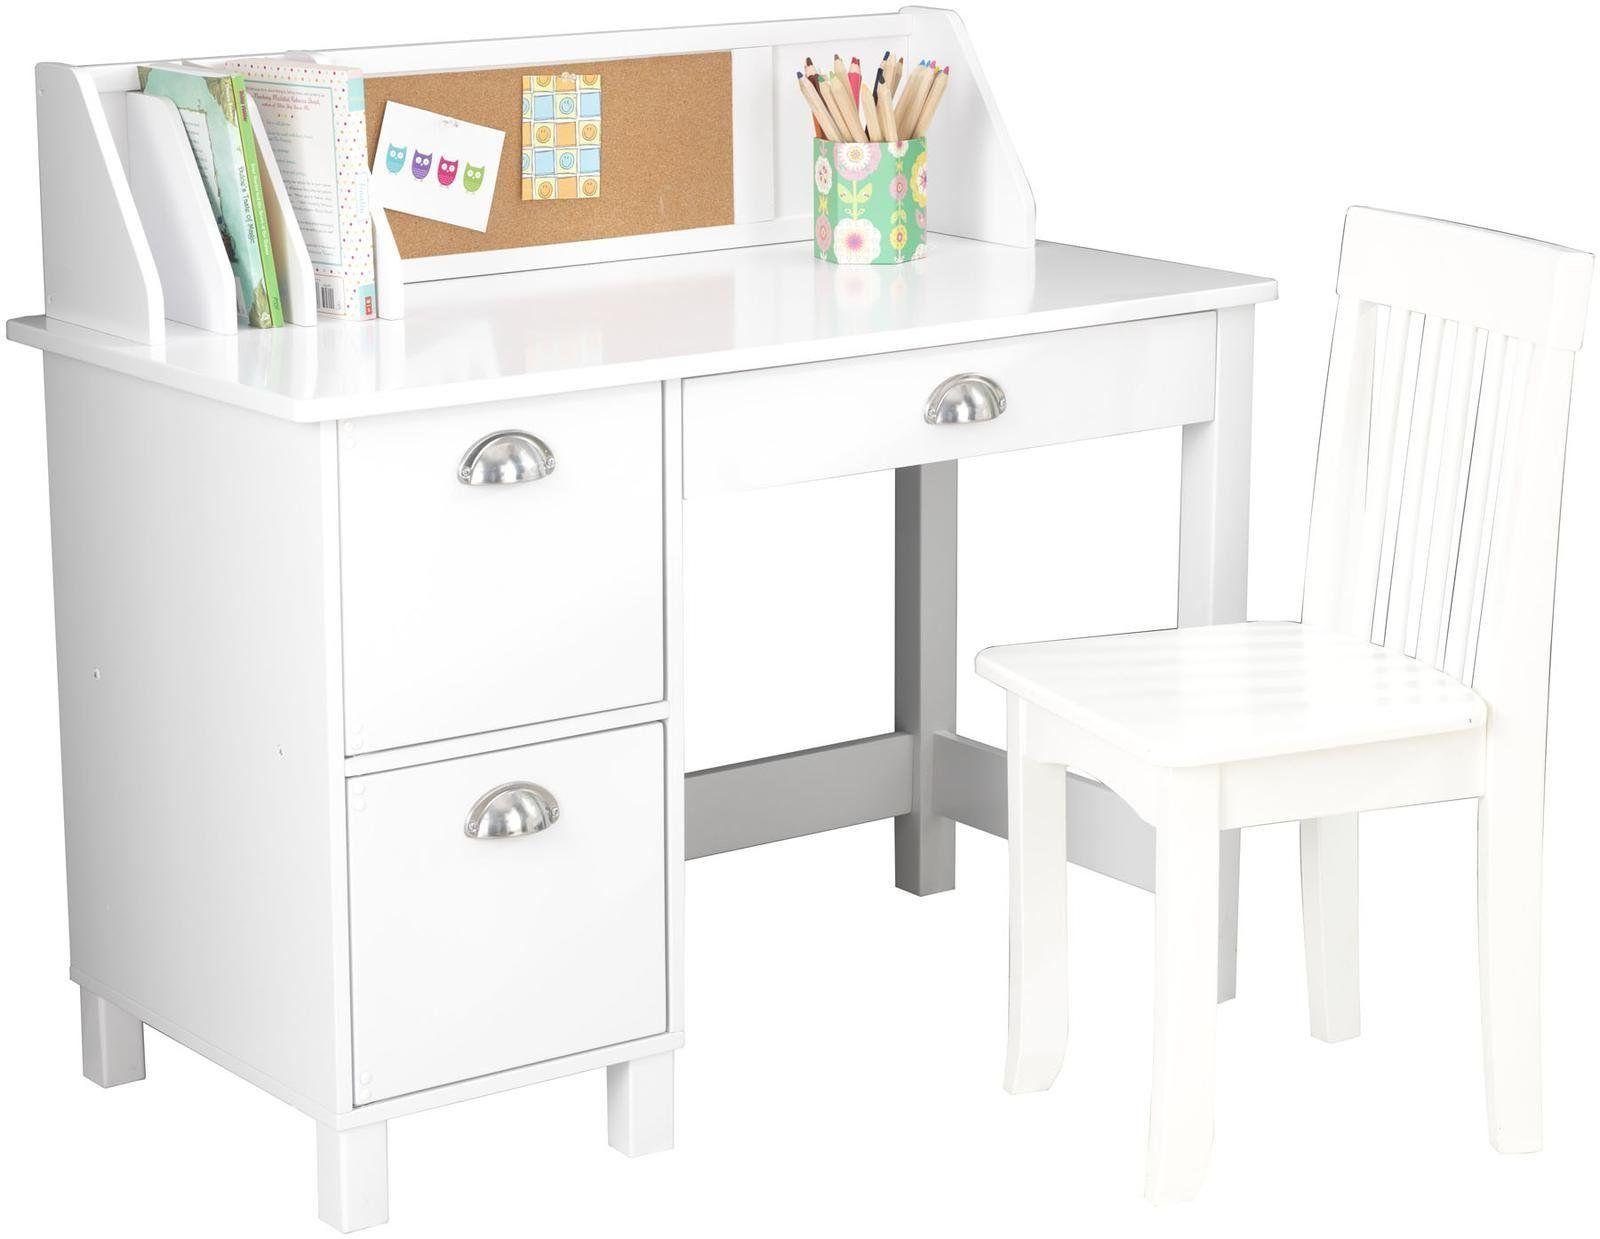 Amazon Com Kidkraft Kids Study Desk With Chair White Toys Games Giftryapp Kids Study Desk Kids Writing Desk Desk With Drawers